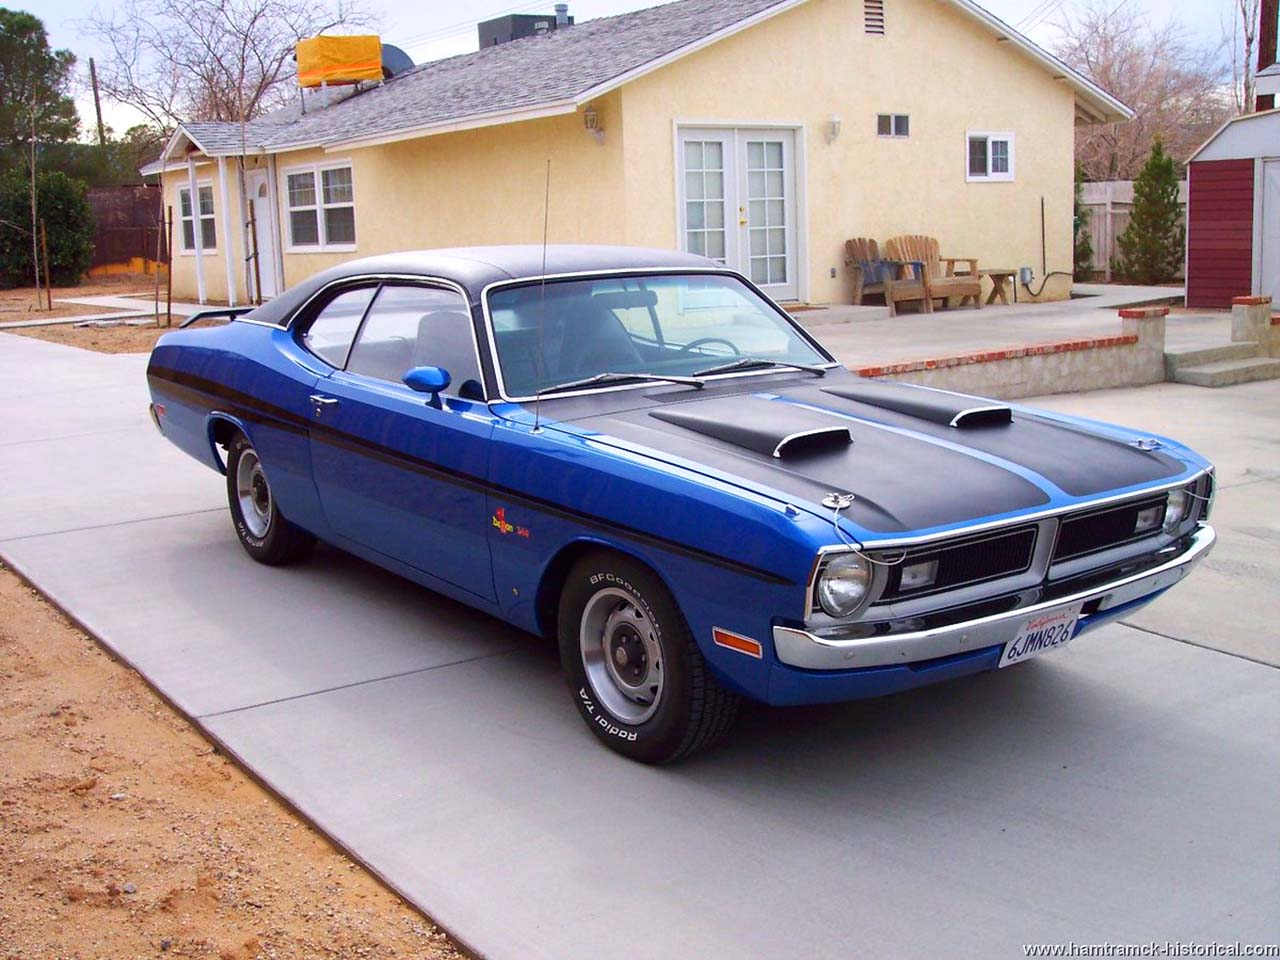 20 Classic & Badass Muscle Cars That Will Never Get Old #20: Dodge Demon (1971)